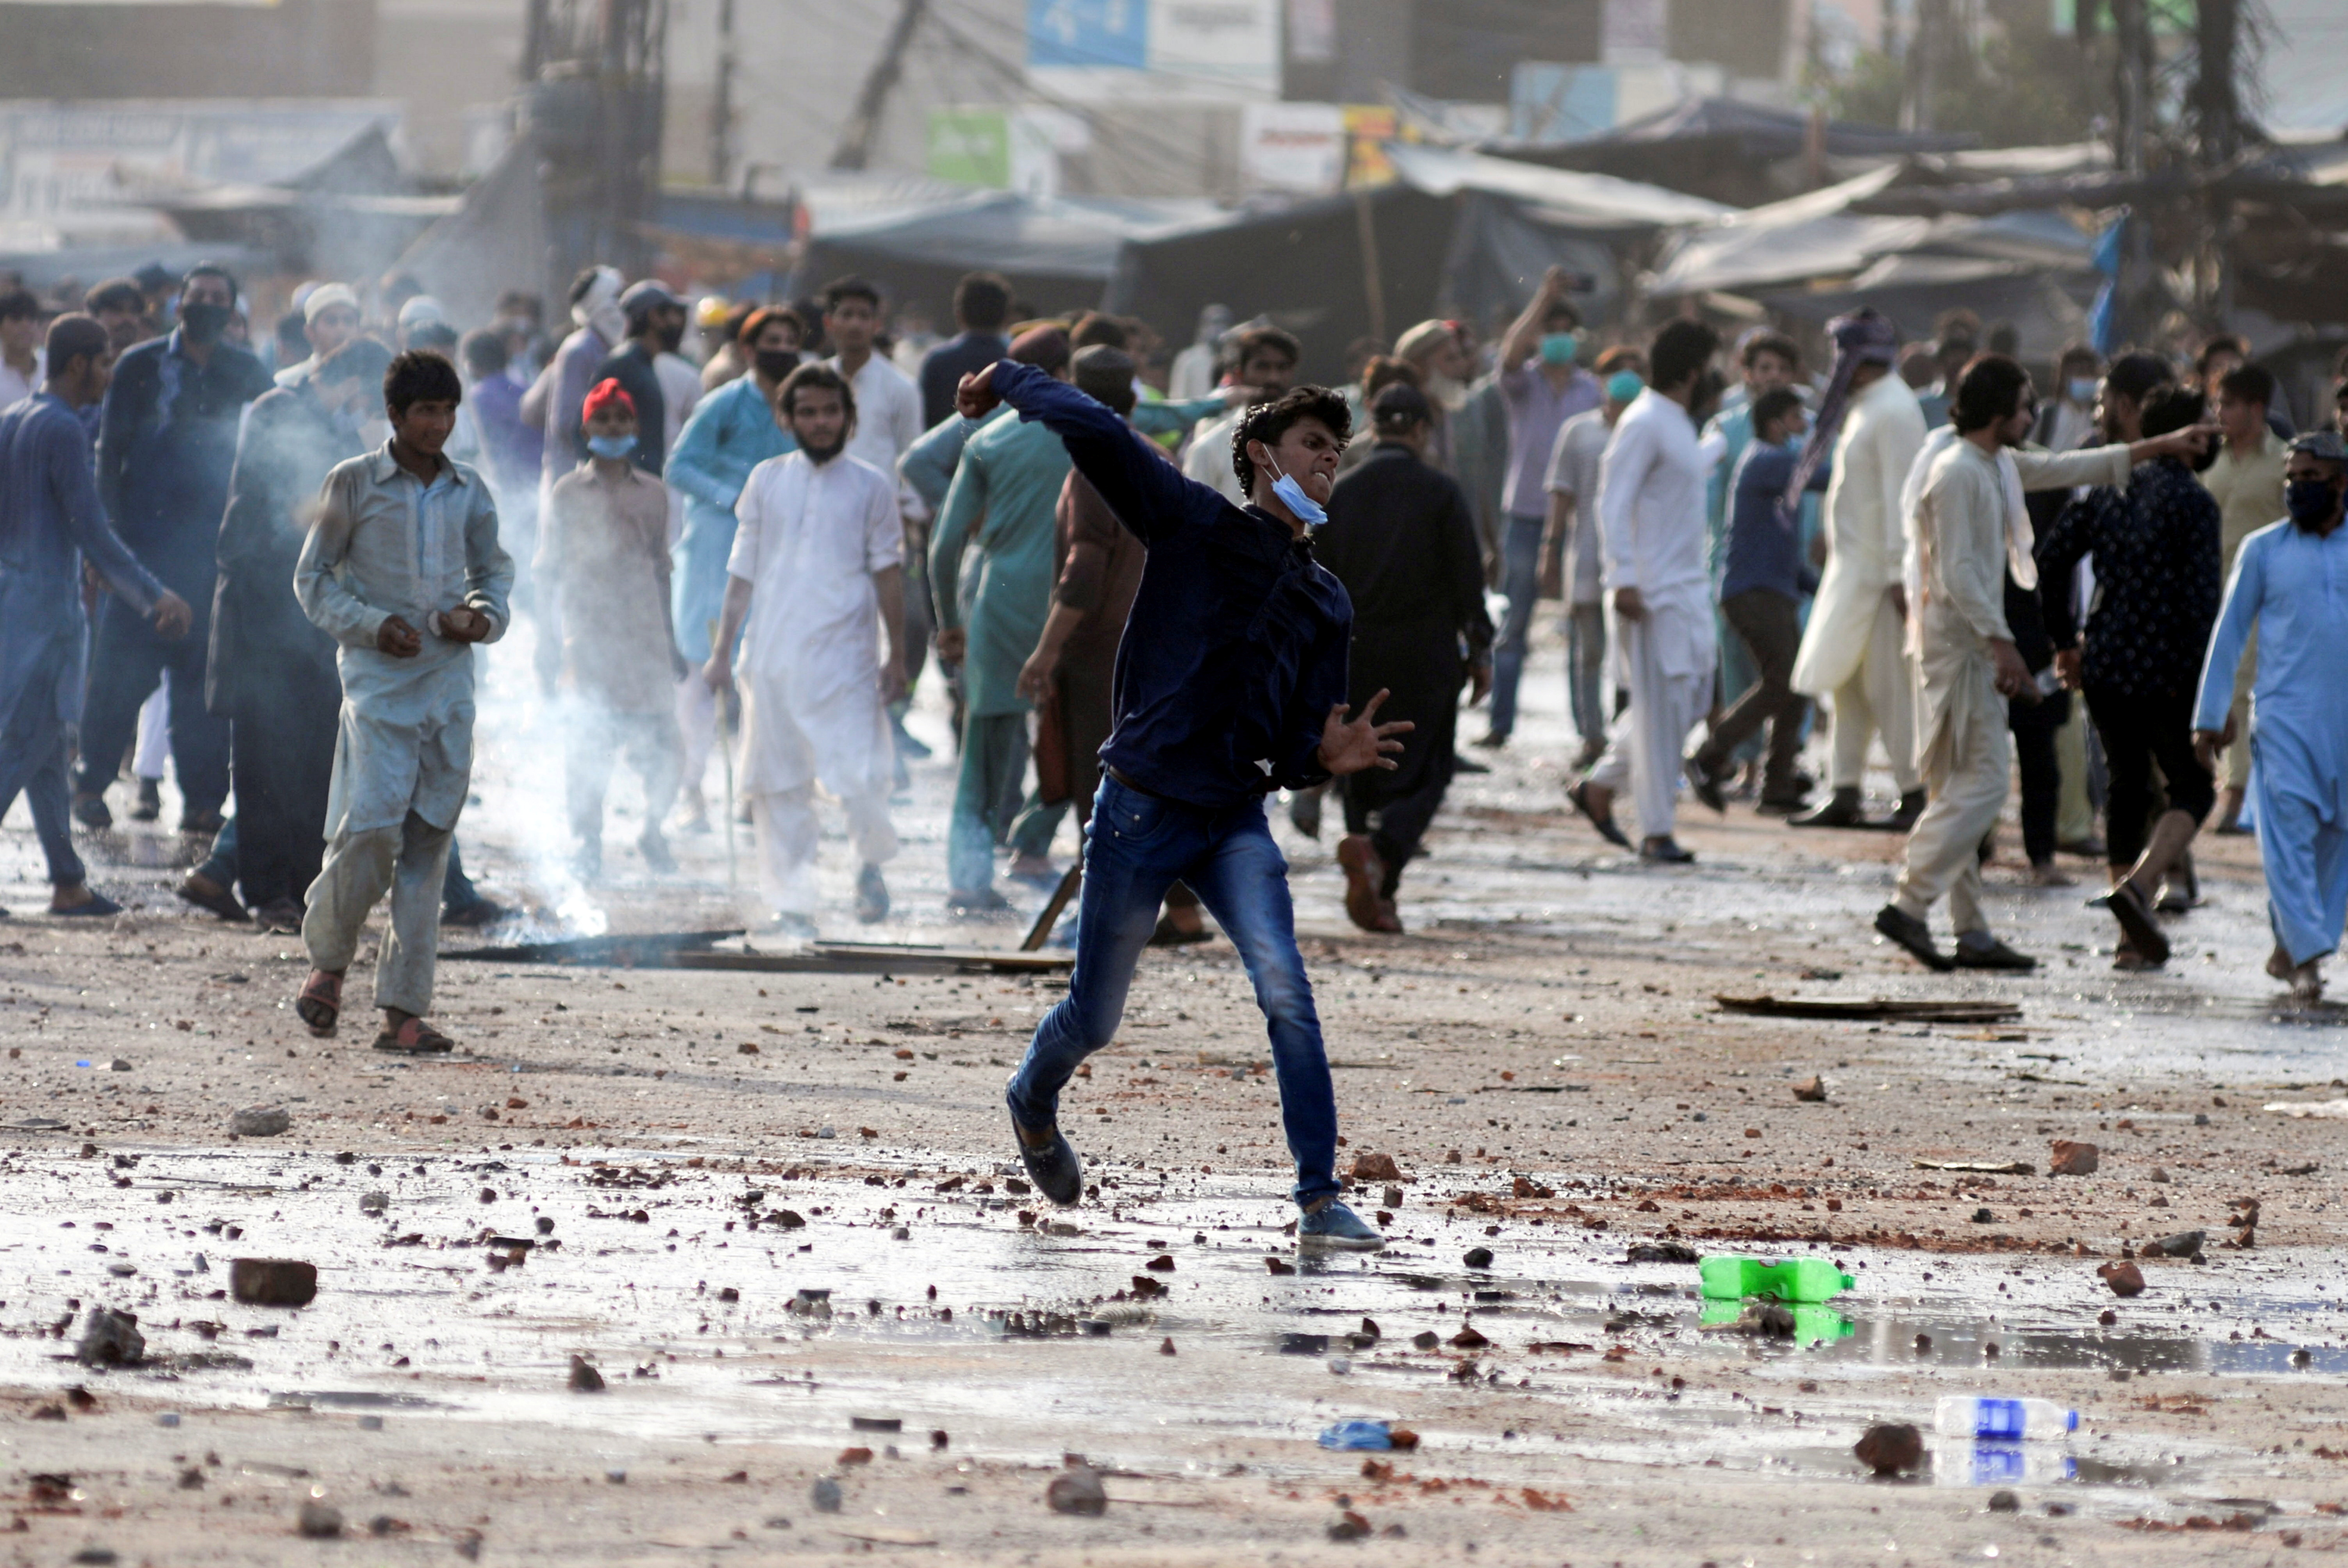 A supporter of the Tehreek-e-Labaik Pakistan (TLP) Islamist political party hurls stones towards police (not in picture) during a protest against the arrest of their leader in Lahore, Pakistan April 13, 2021. REUTERS/Stringer/File Photo